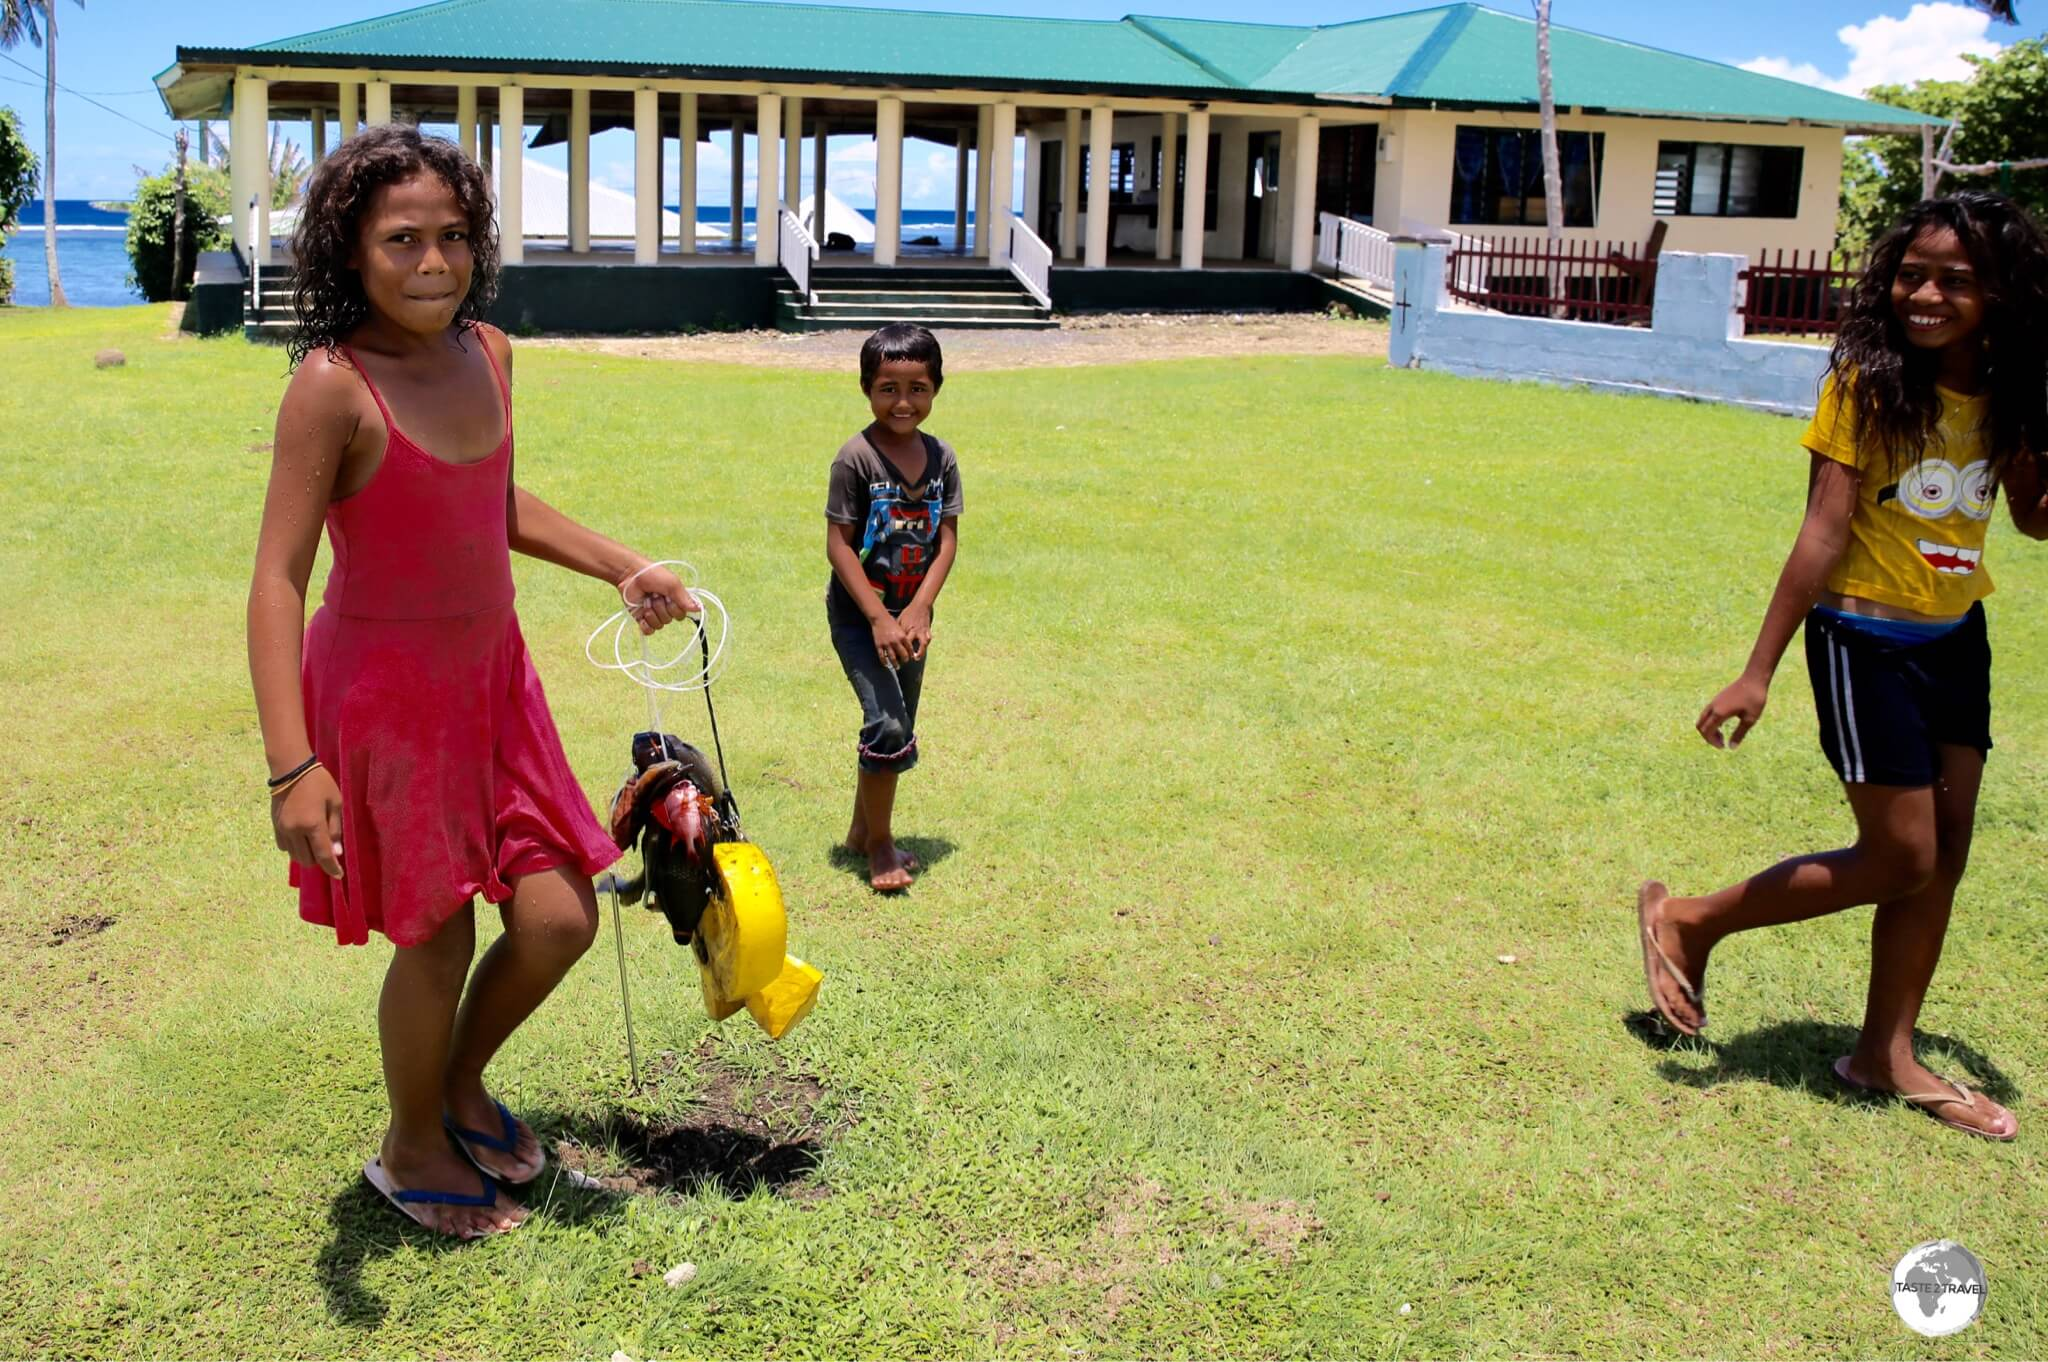 Children in Amaile returning home with the catch of the day.